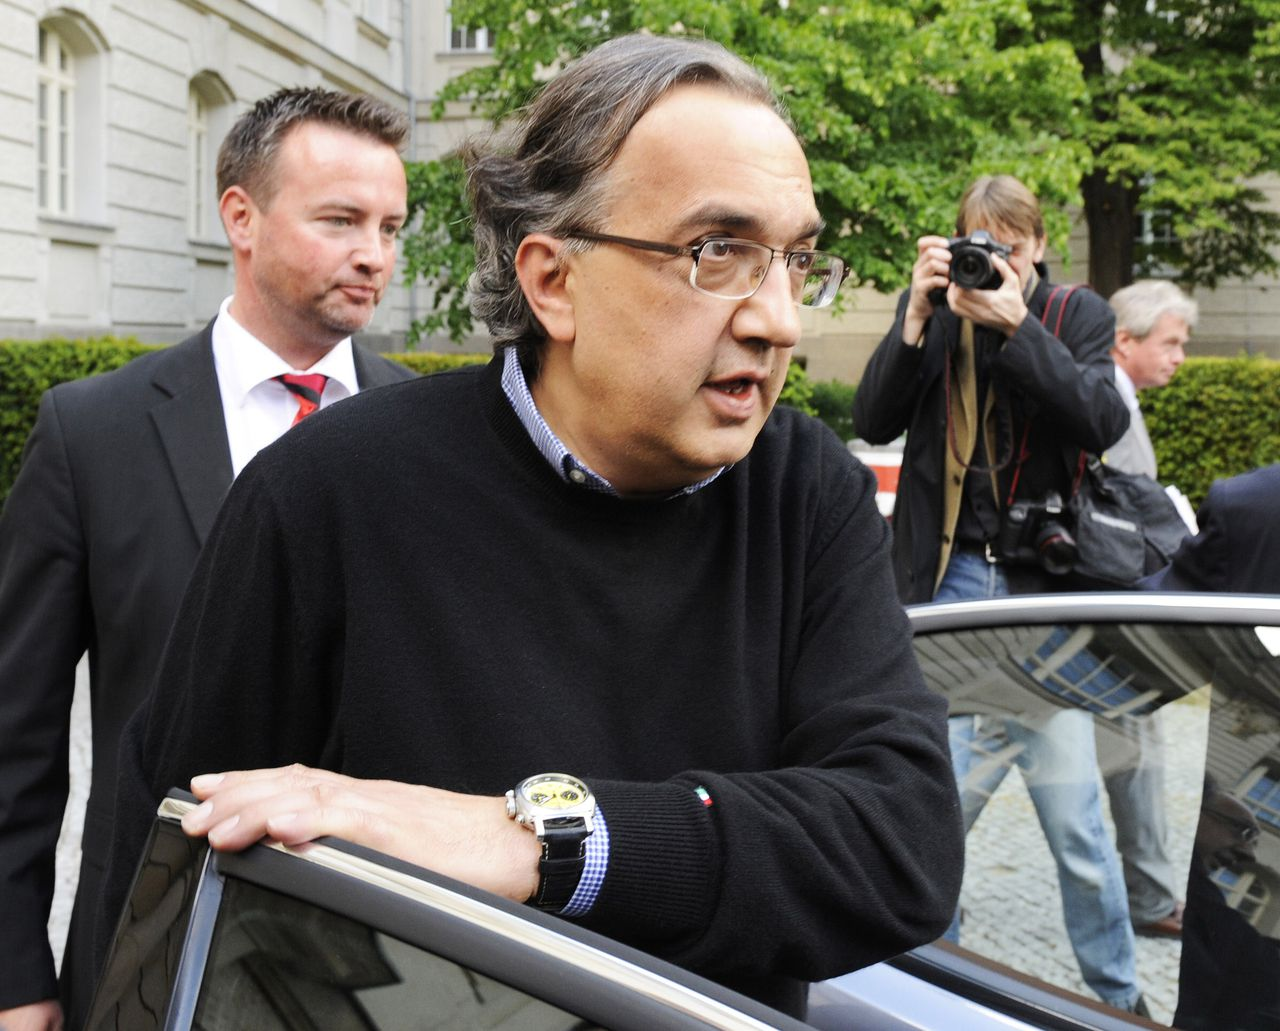 Fiat-topman Sergio Marchionne stapt in zijn auto nadat hij gisteren in Berlijn een gesprek had met de Duitse minister van Economische Zaken Karl-Theodor zu Guttenberg. (Foto AFP) Fiat CEO Sergio Marchionne gets into his car as he leaves the Economy Ministry following talks with German Economy Minister Karl-Theodor zu Guttenberg in Berlin May 4, 2009. The boss of Italy's Fiat drummed up support in Berlin for audacious plans to snap up GM's European arm and combine it with the bankrupt Chrysler to create a new global auto giant. AFP PHOTO JOHN MACDOUGALL